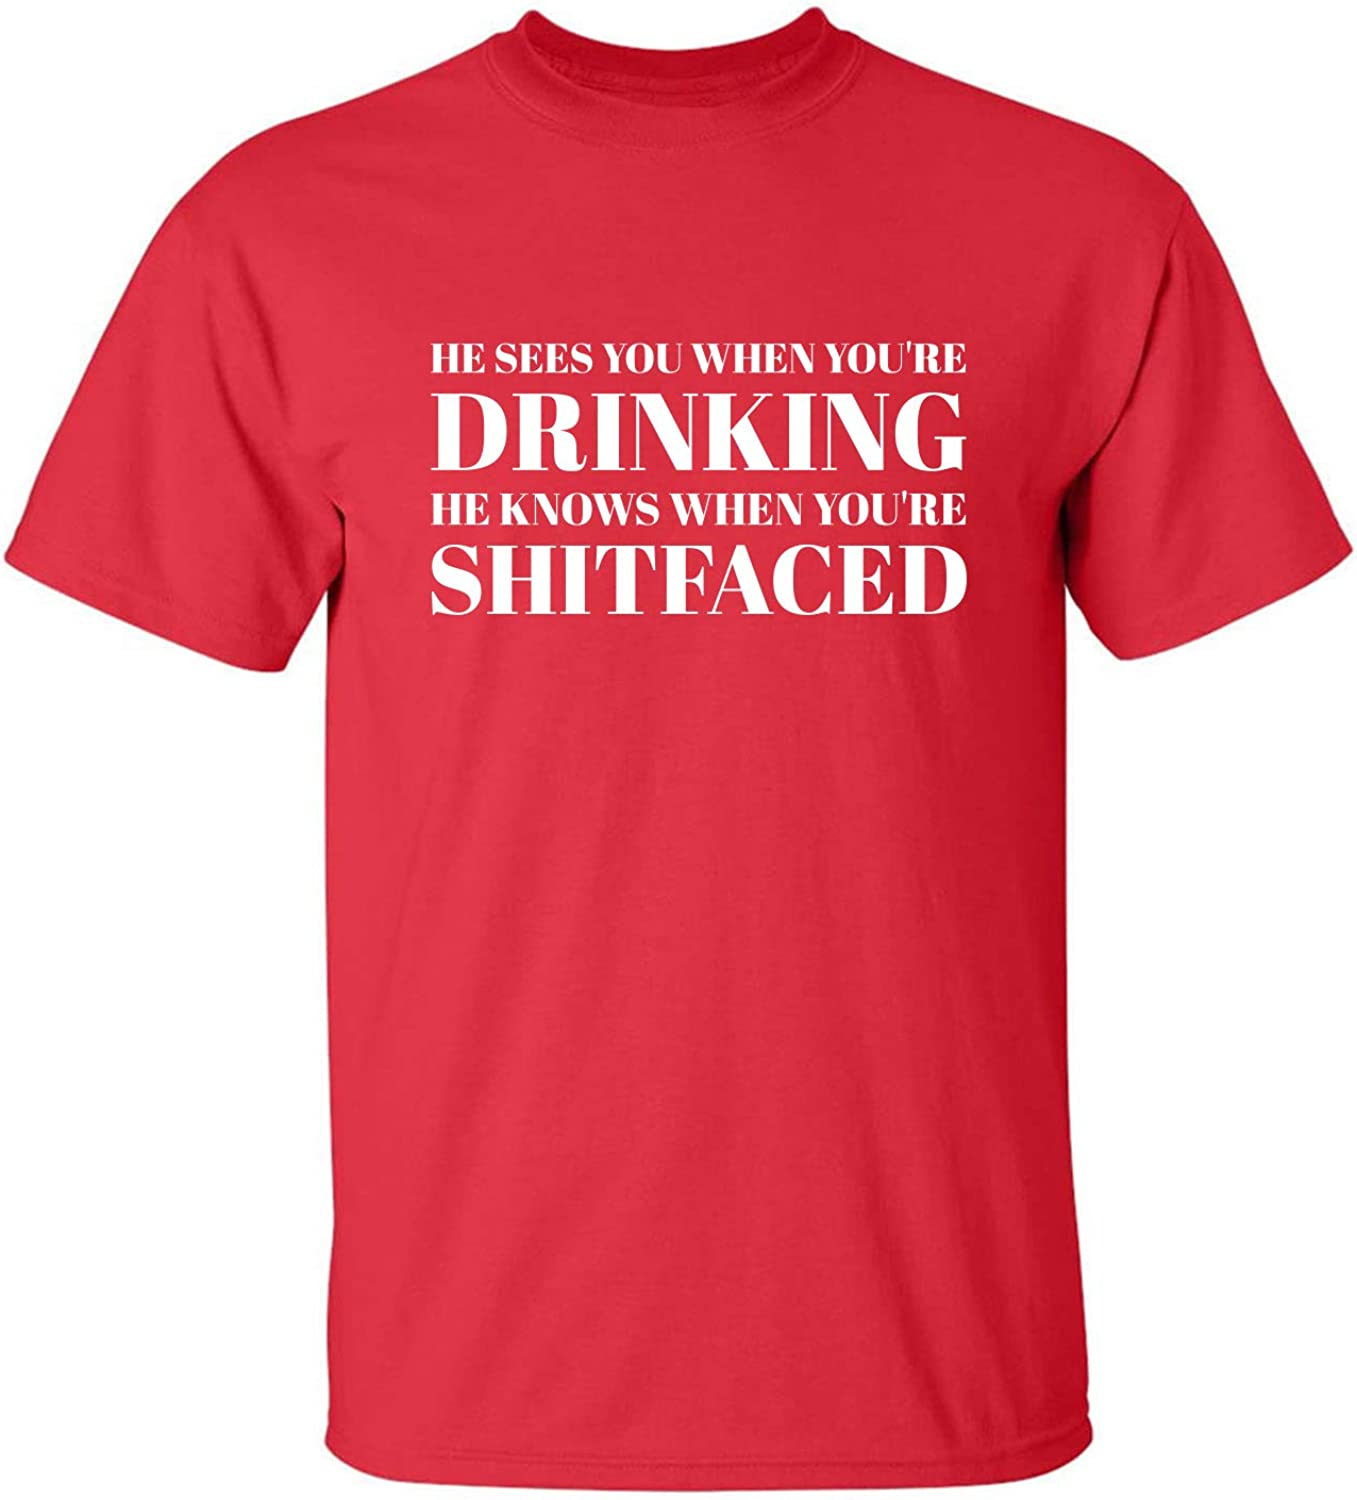 He Sees You When You're Drinking Adult T-Shirt in Red - XXXX-Large